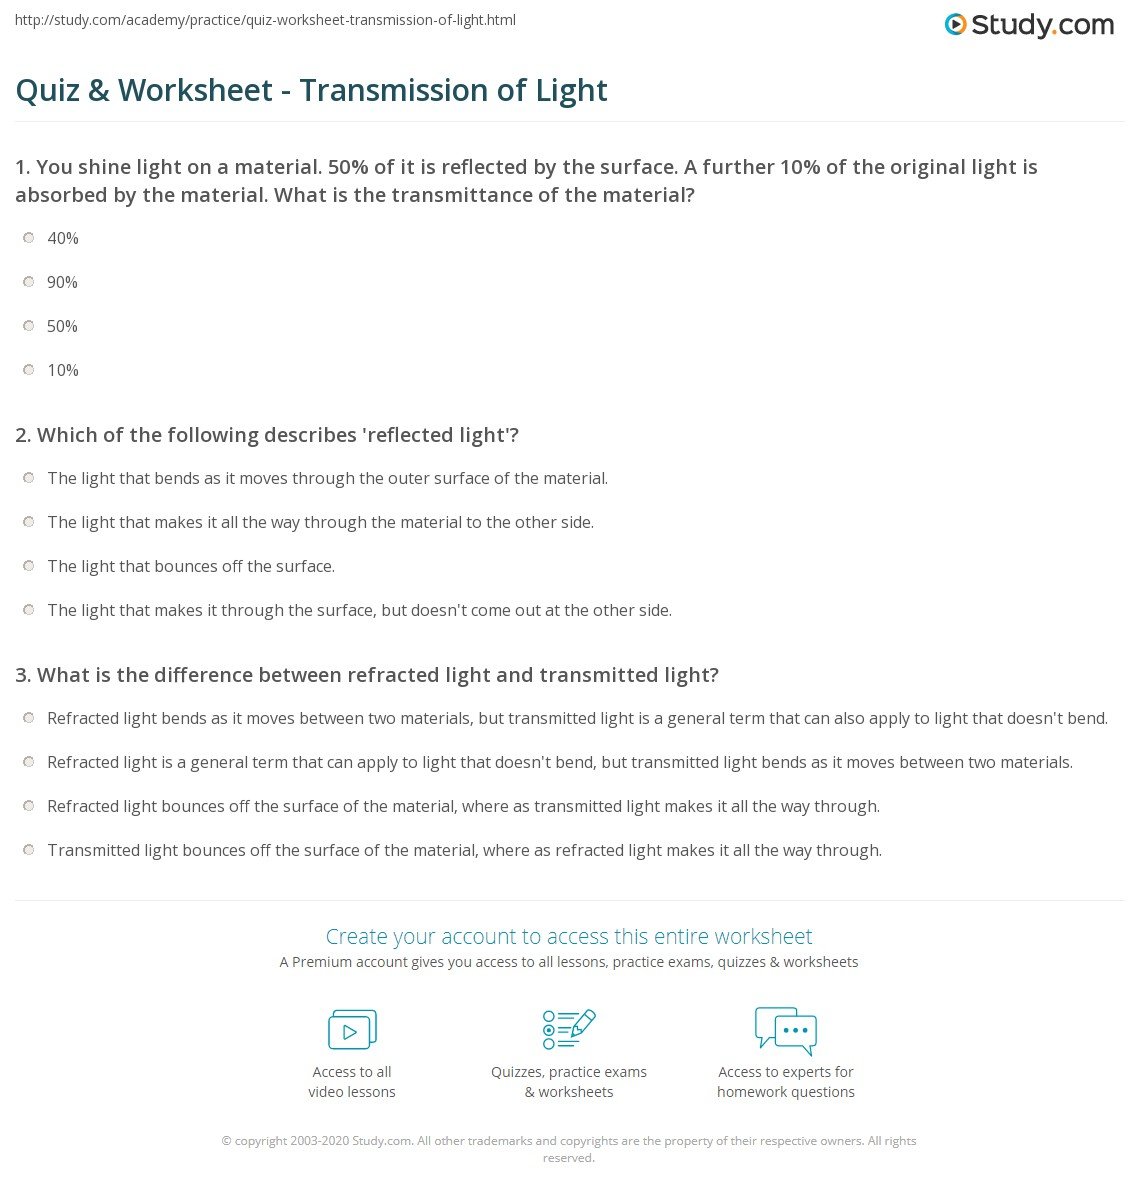 Quiz & Worksheet - Transmission of Light | Study.com